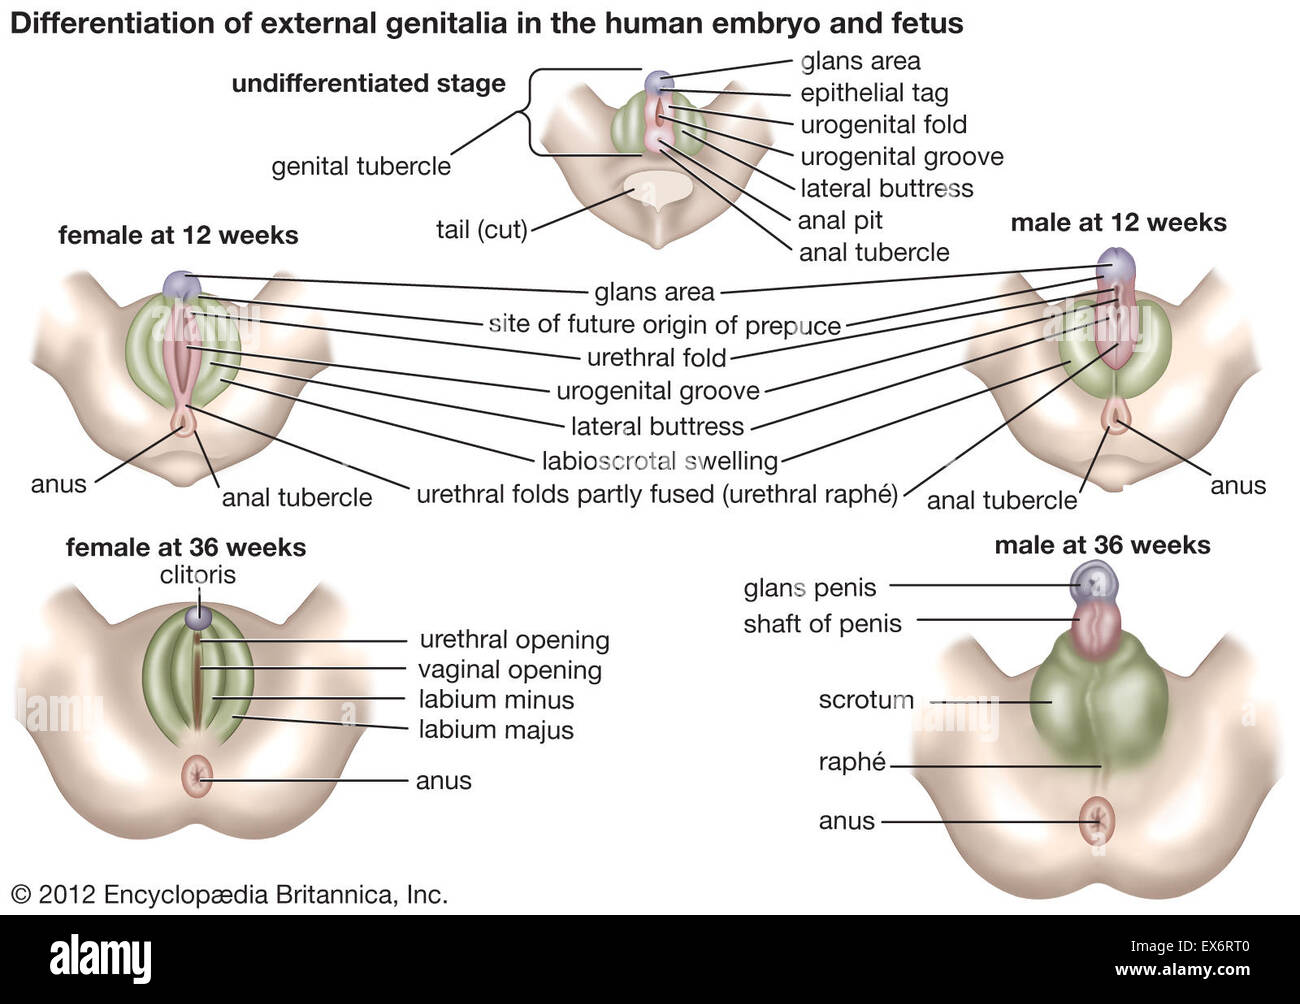 http://c8.alamy.com/comp/EX6RT0/external-genitalia-in-human-embryo-and-fetus-EX6RT0.jpg